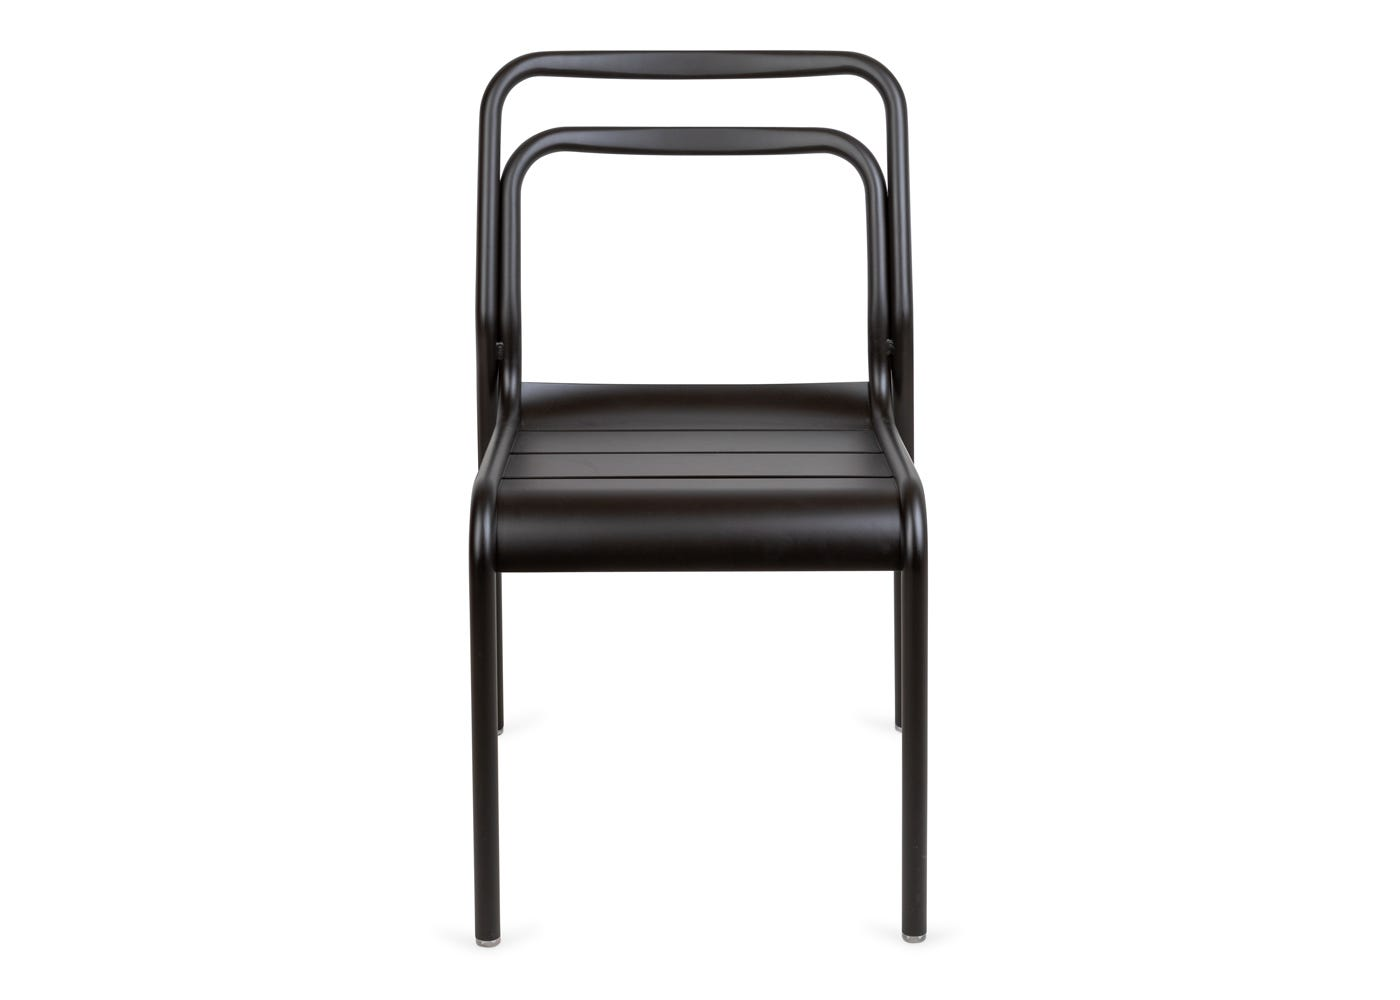 Petra outdoor side chair in dark grey - Front profile.